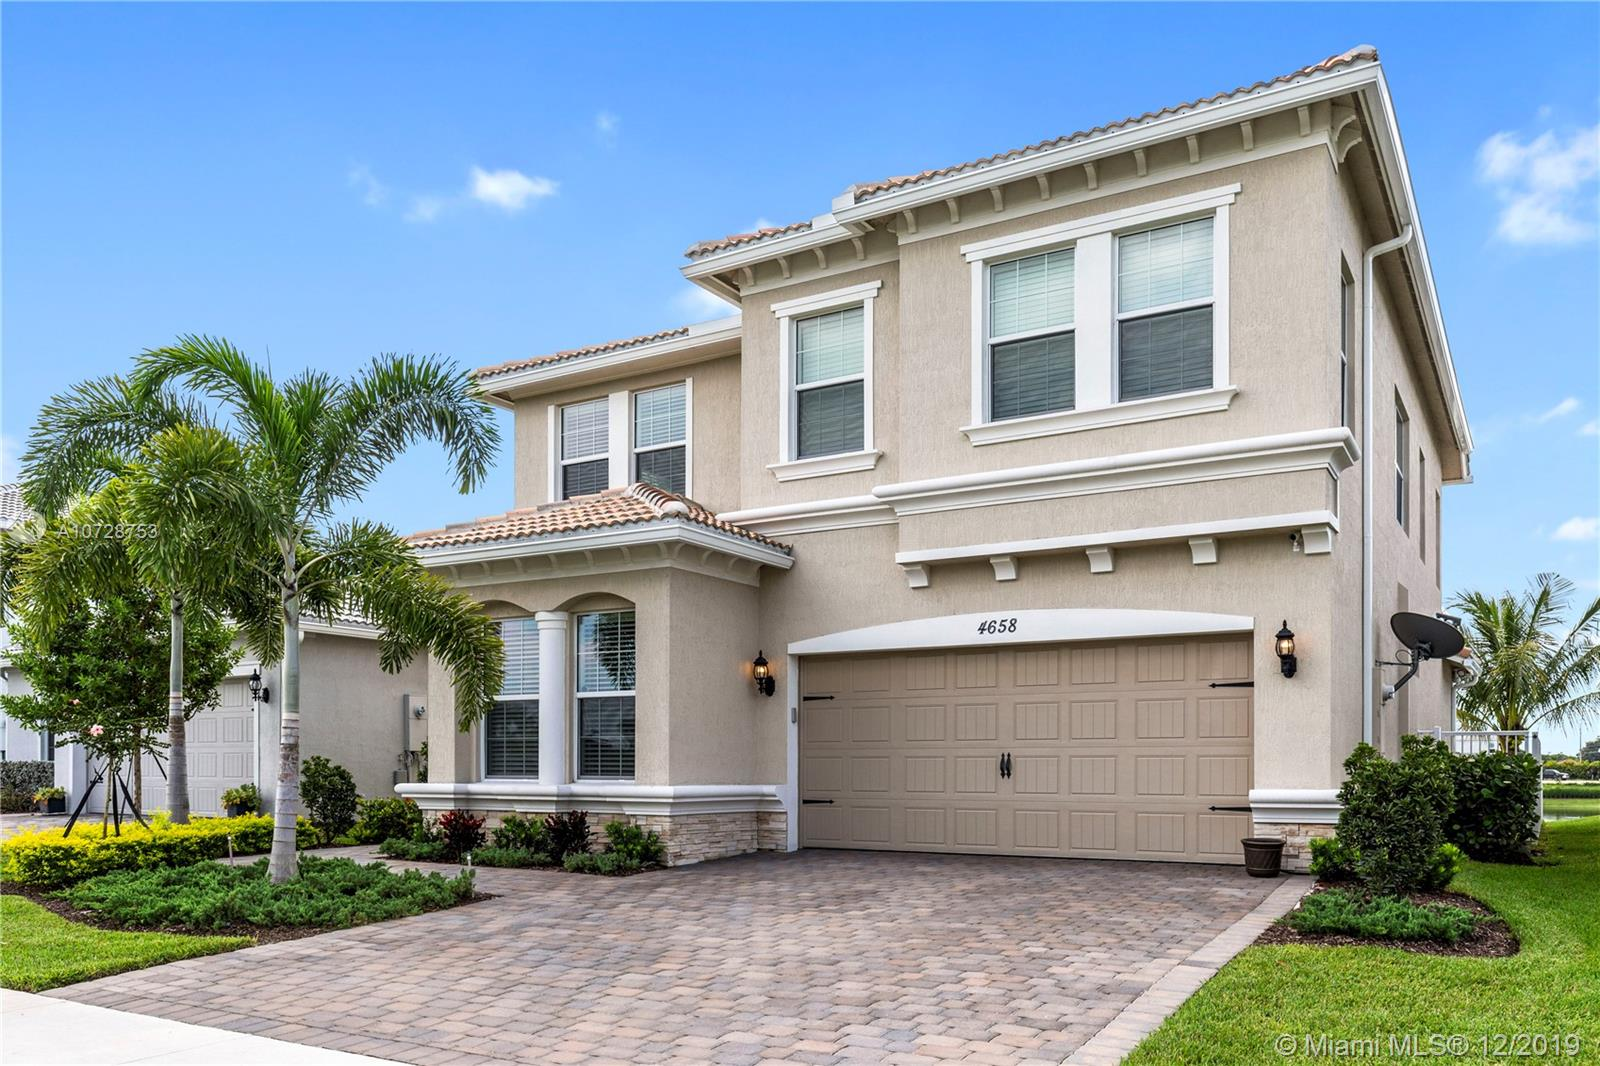 4658  Greenway Dr  For Sale A10728753, FL